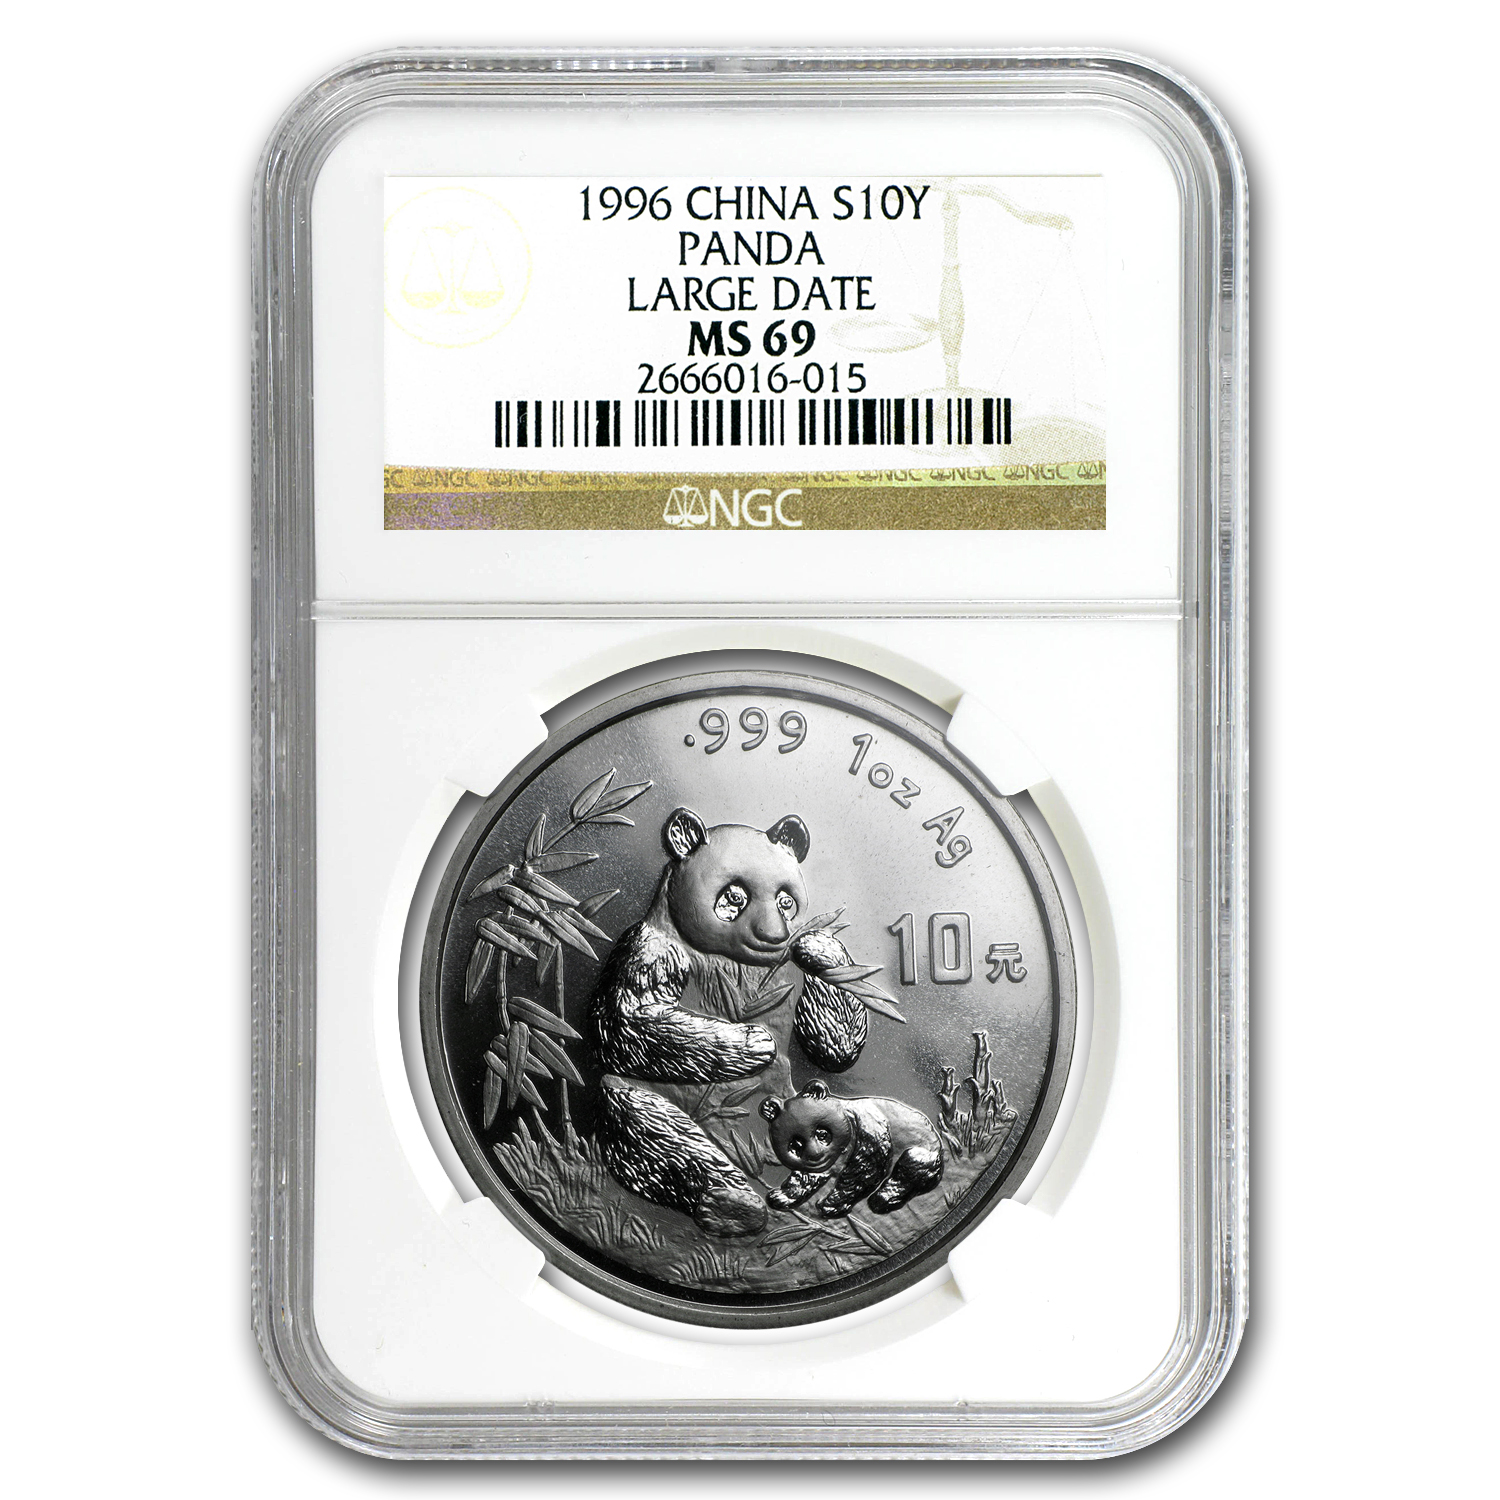 1996 China 1 oz Silver Panda MS-69 NGC (Large Date)